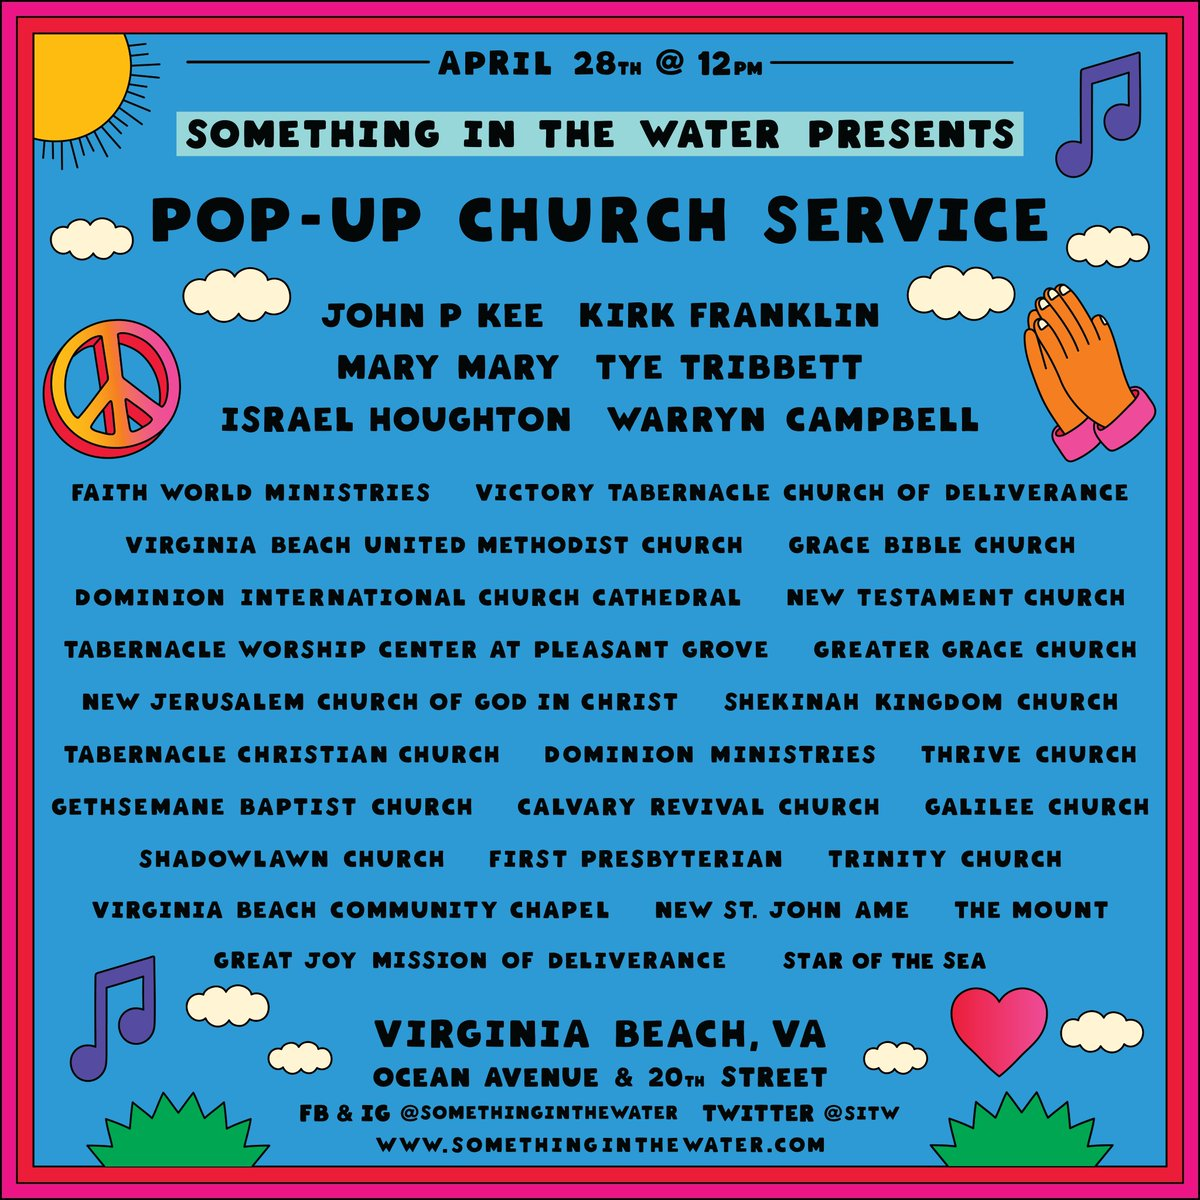 RT @sitw: The #SITWfest Pop-Up Church lineup is HERE! Happening on Sunday of the festival. Come join us ???????? https://t.co/CtWmGeOfWR